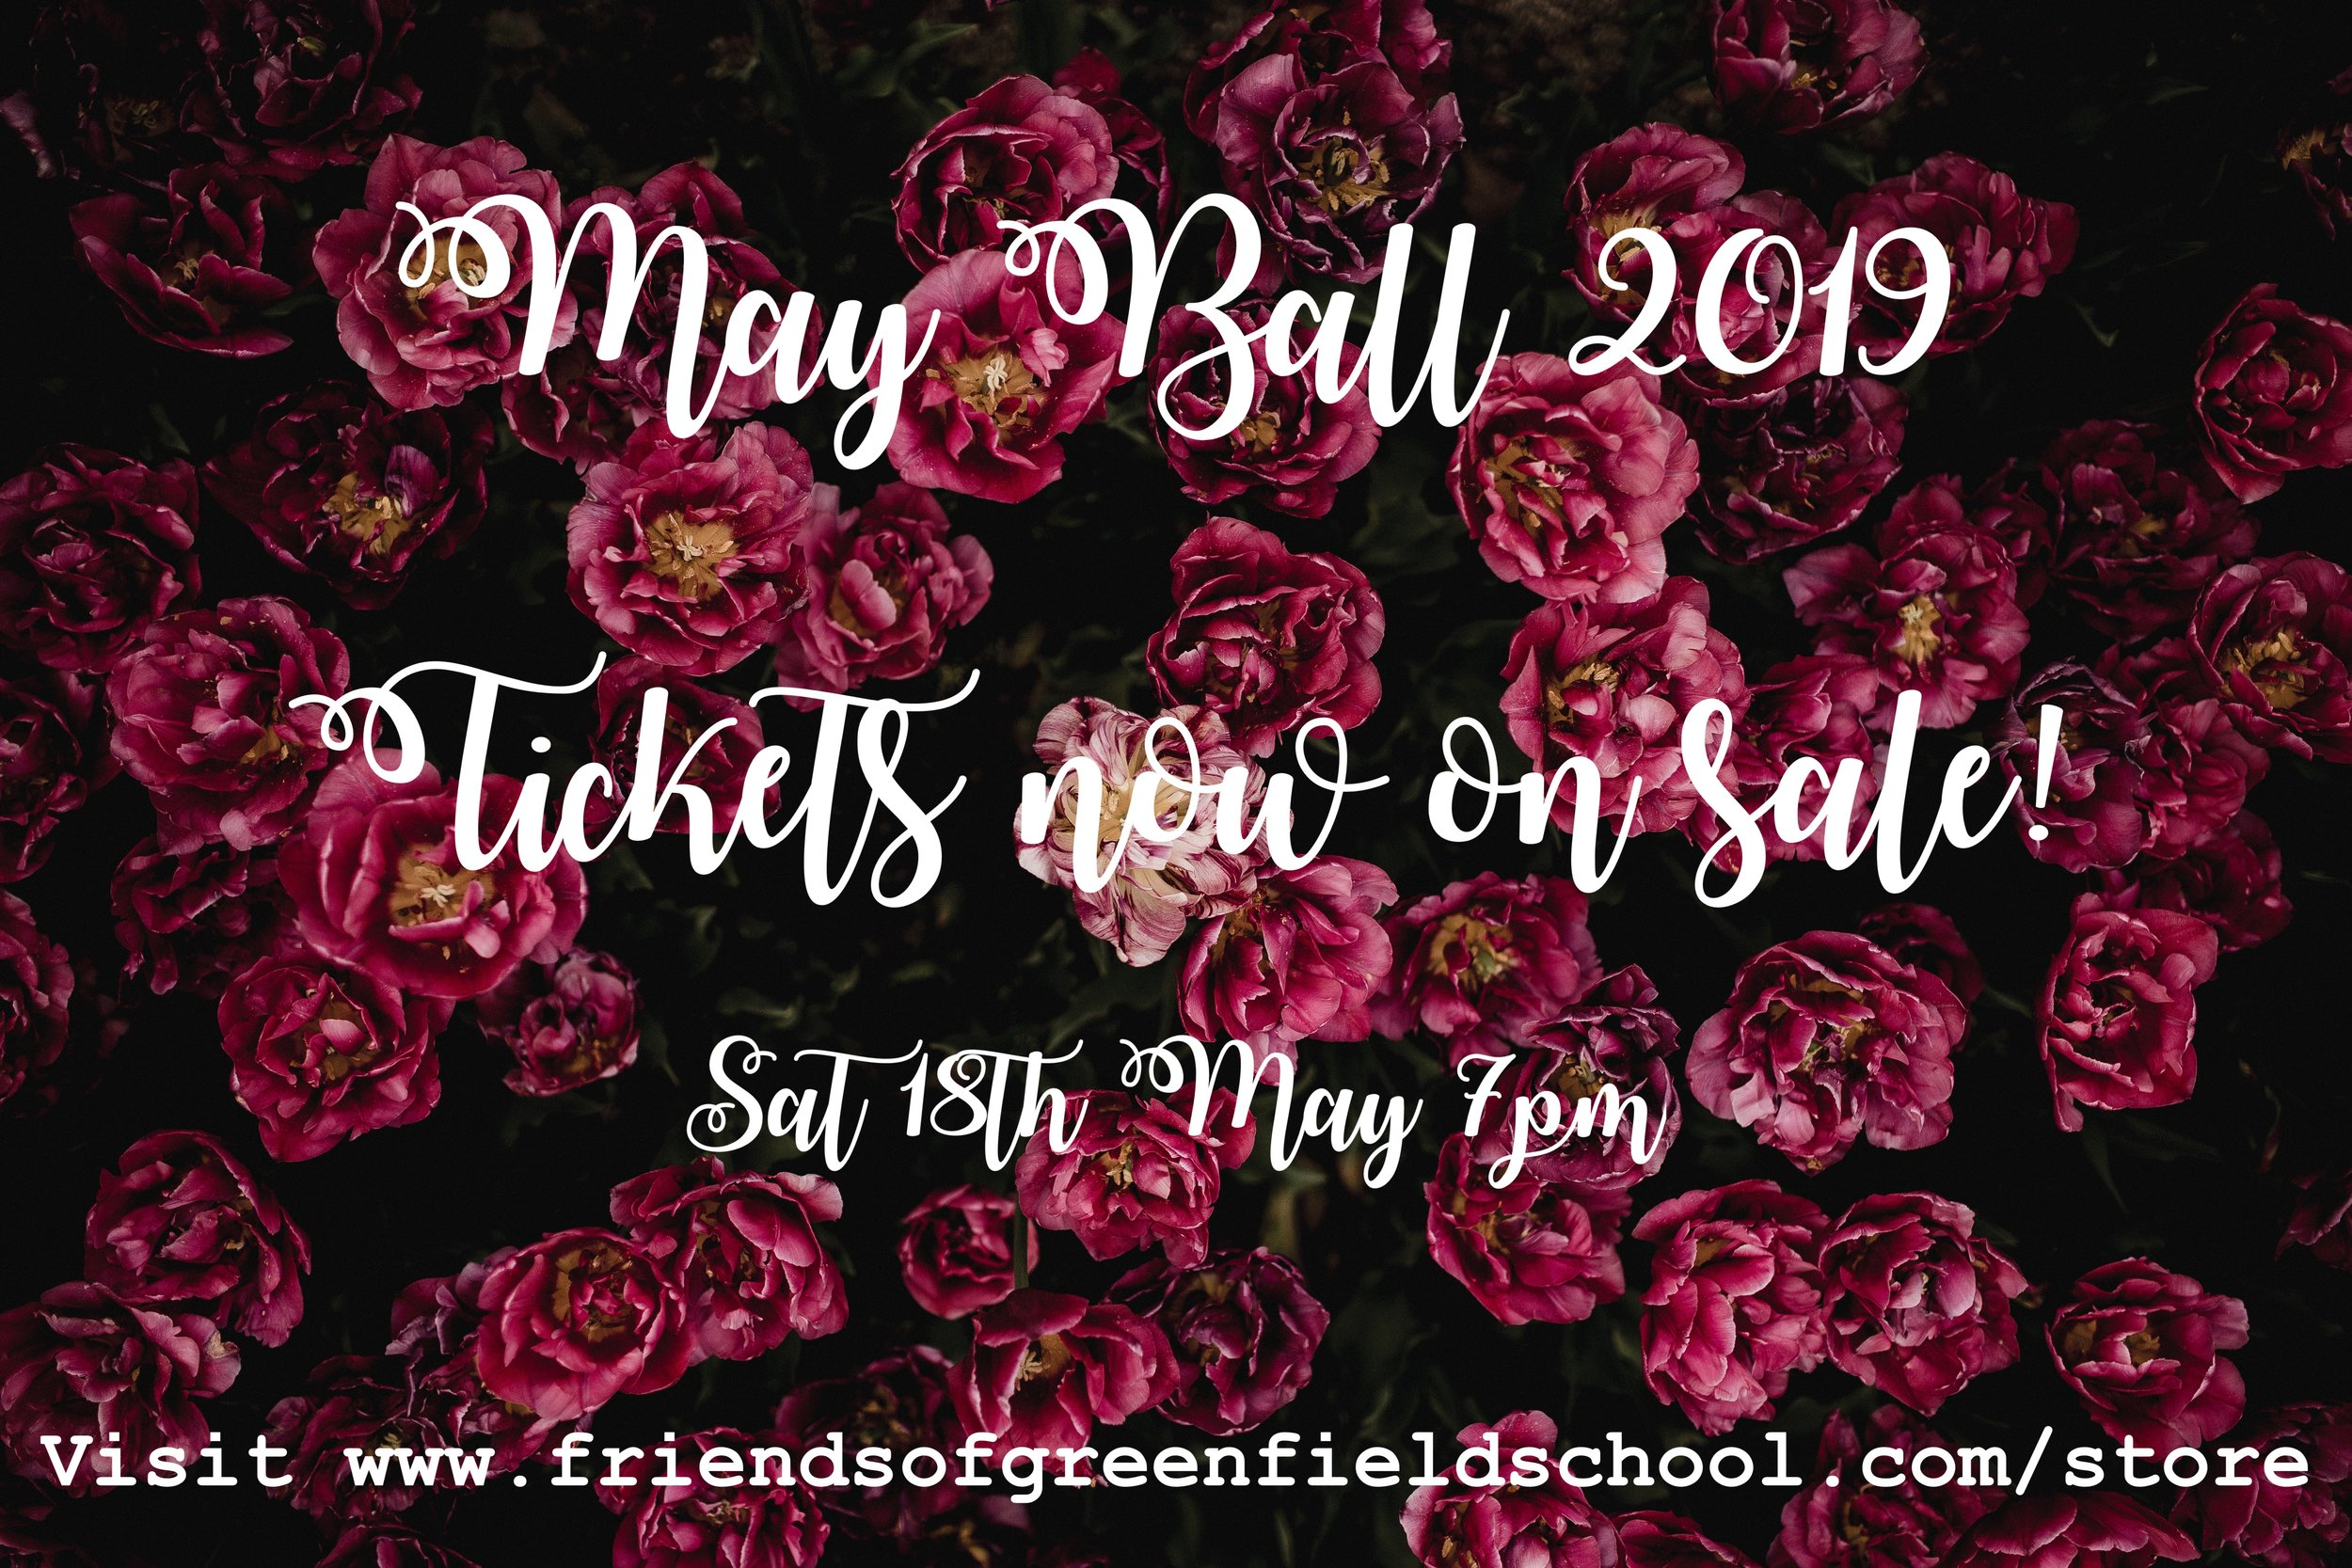 Ball tickets on sale now.jpeg